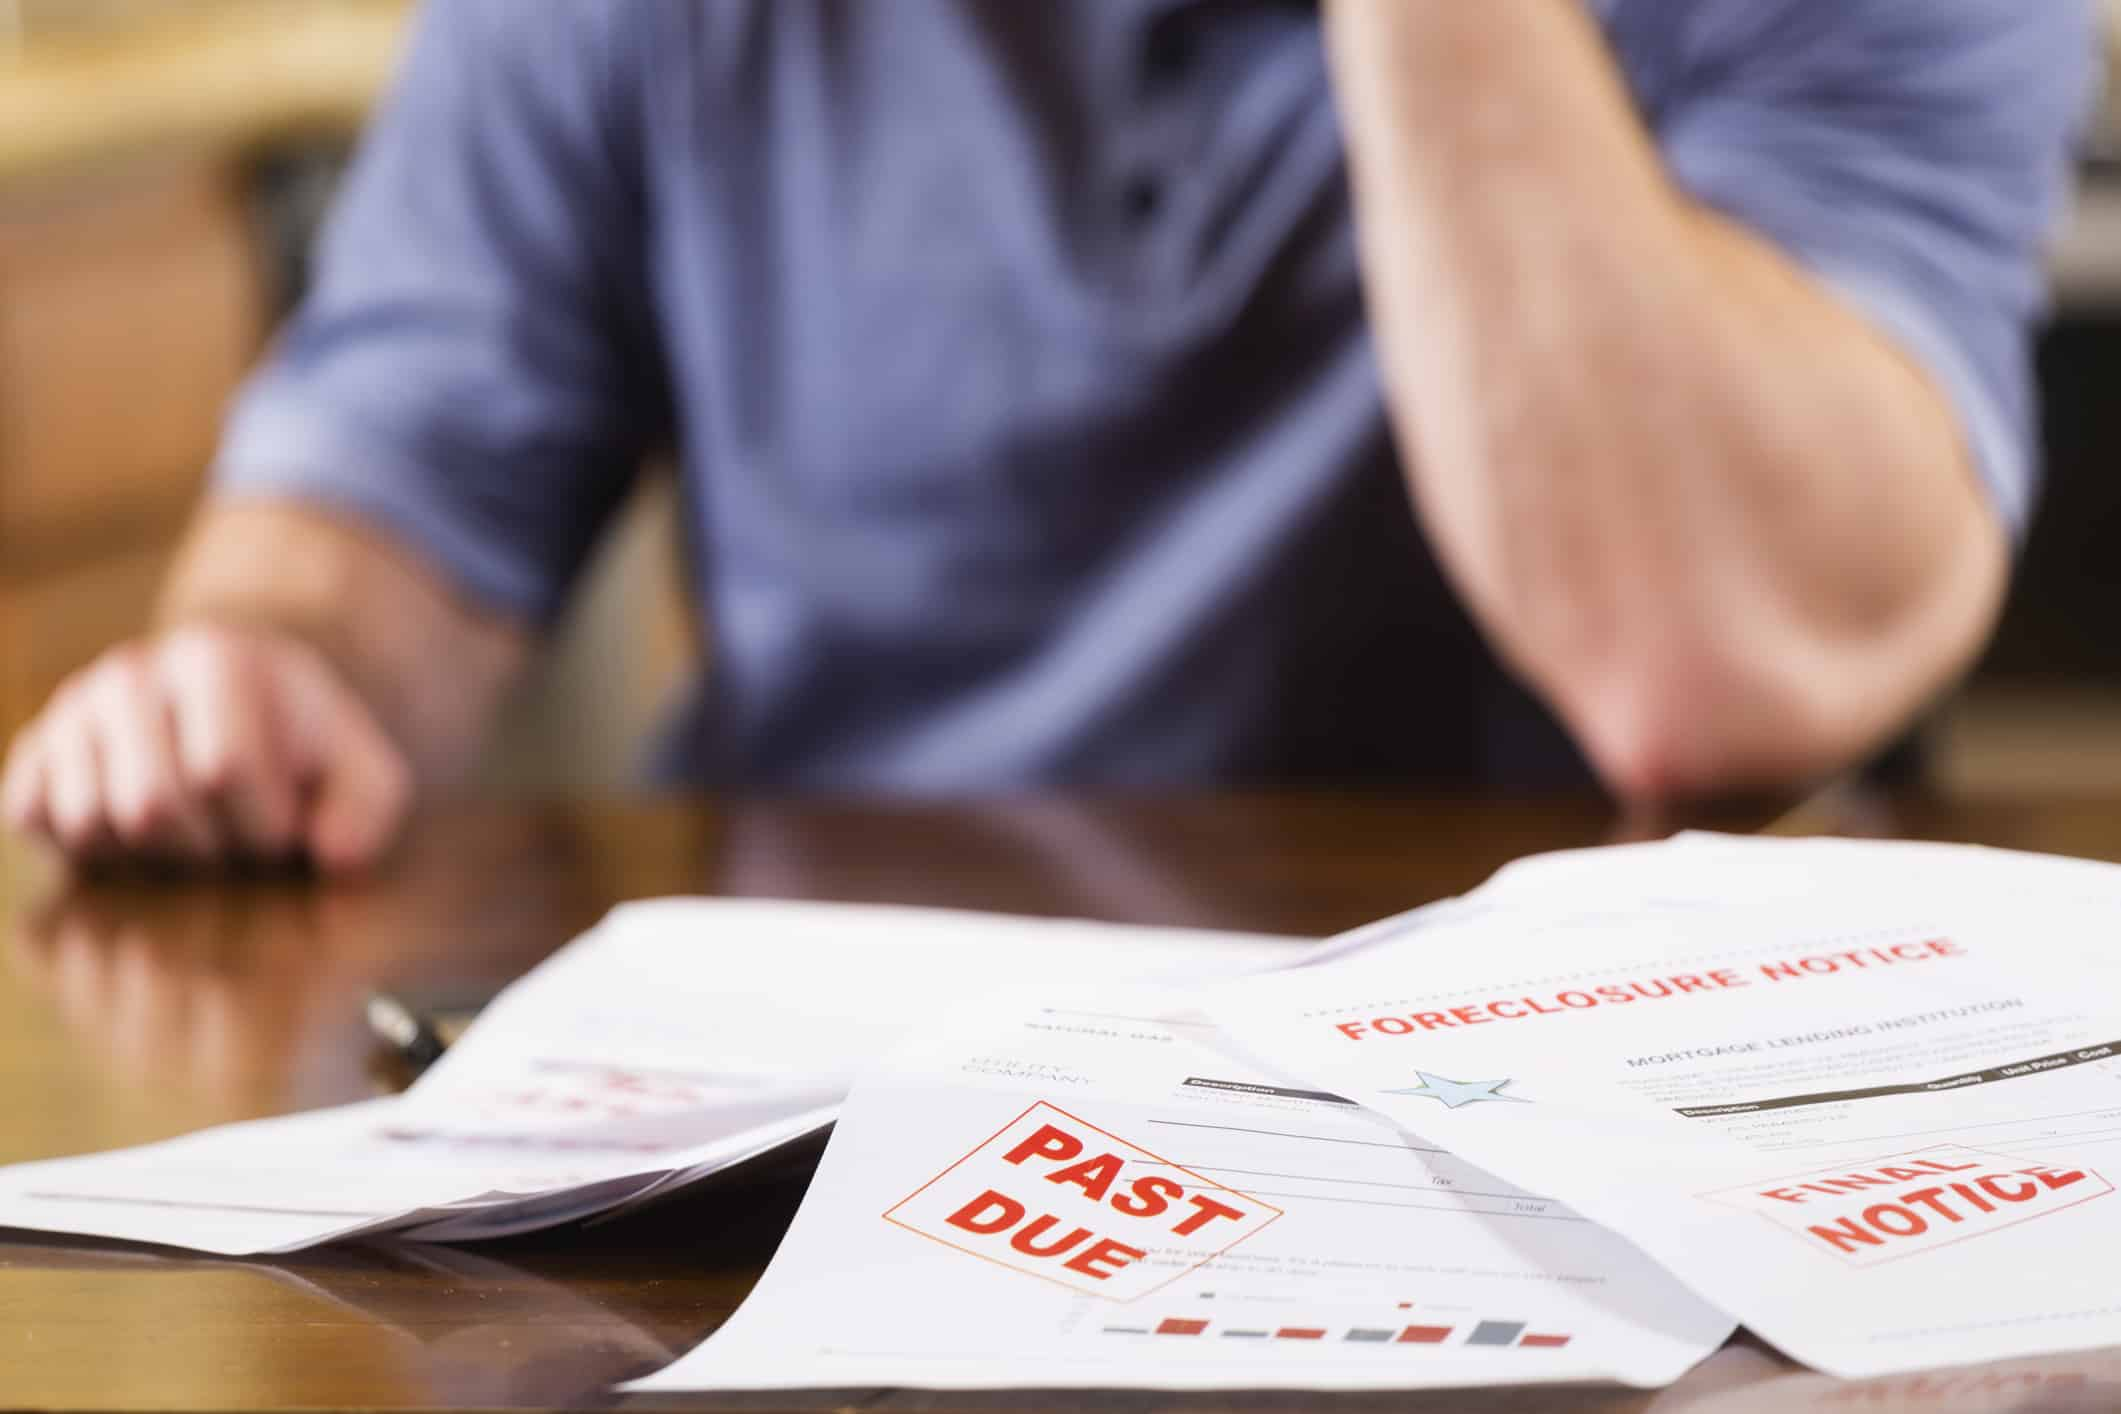 Man struggling to pay overdue bills